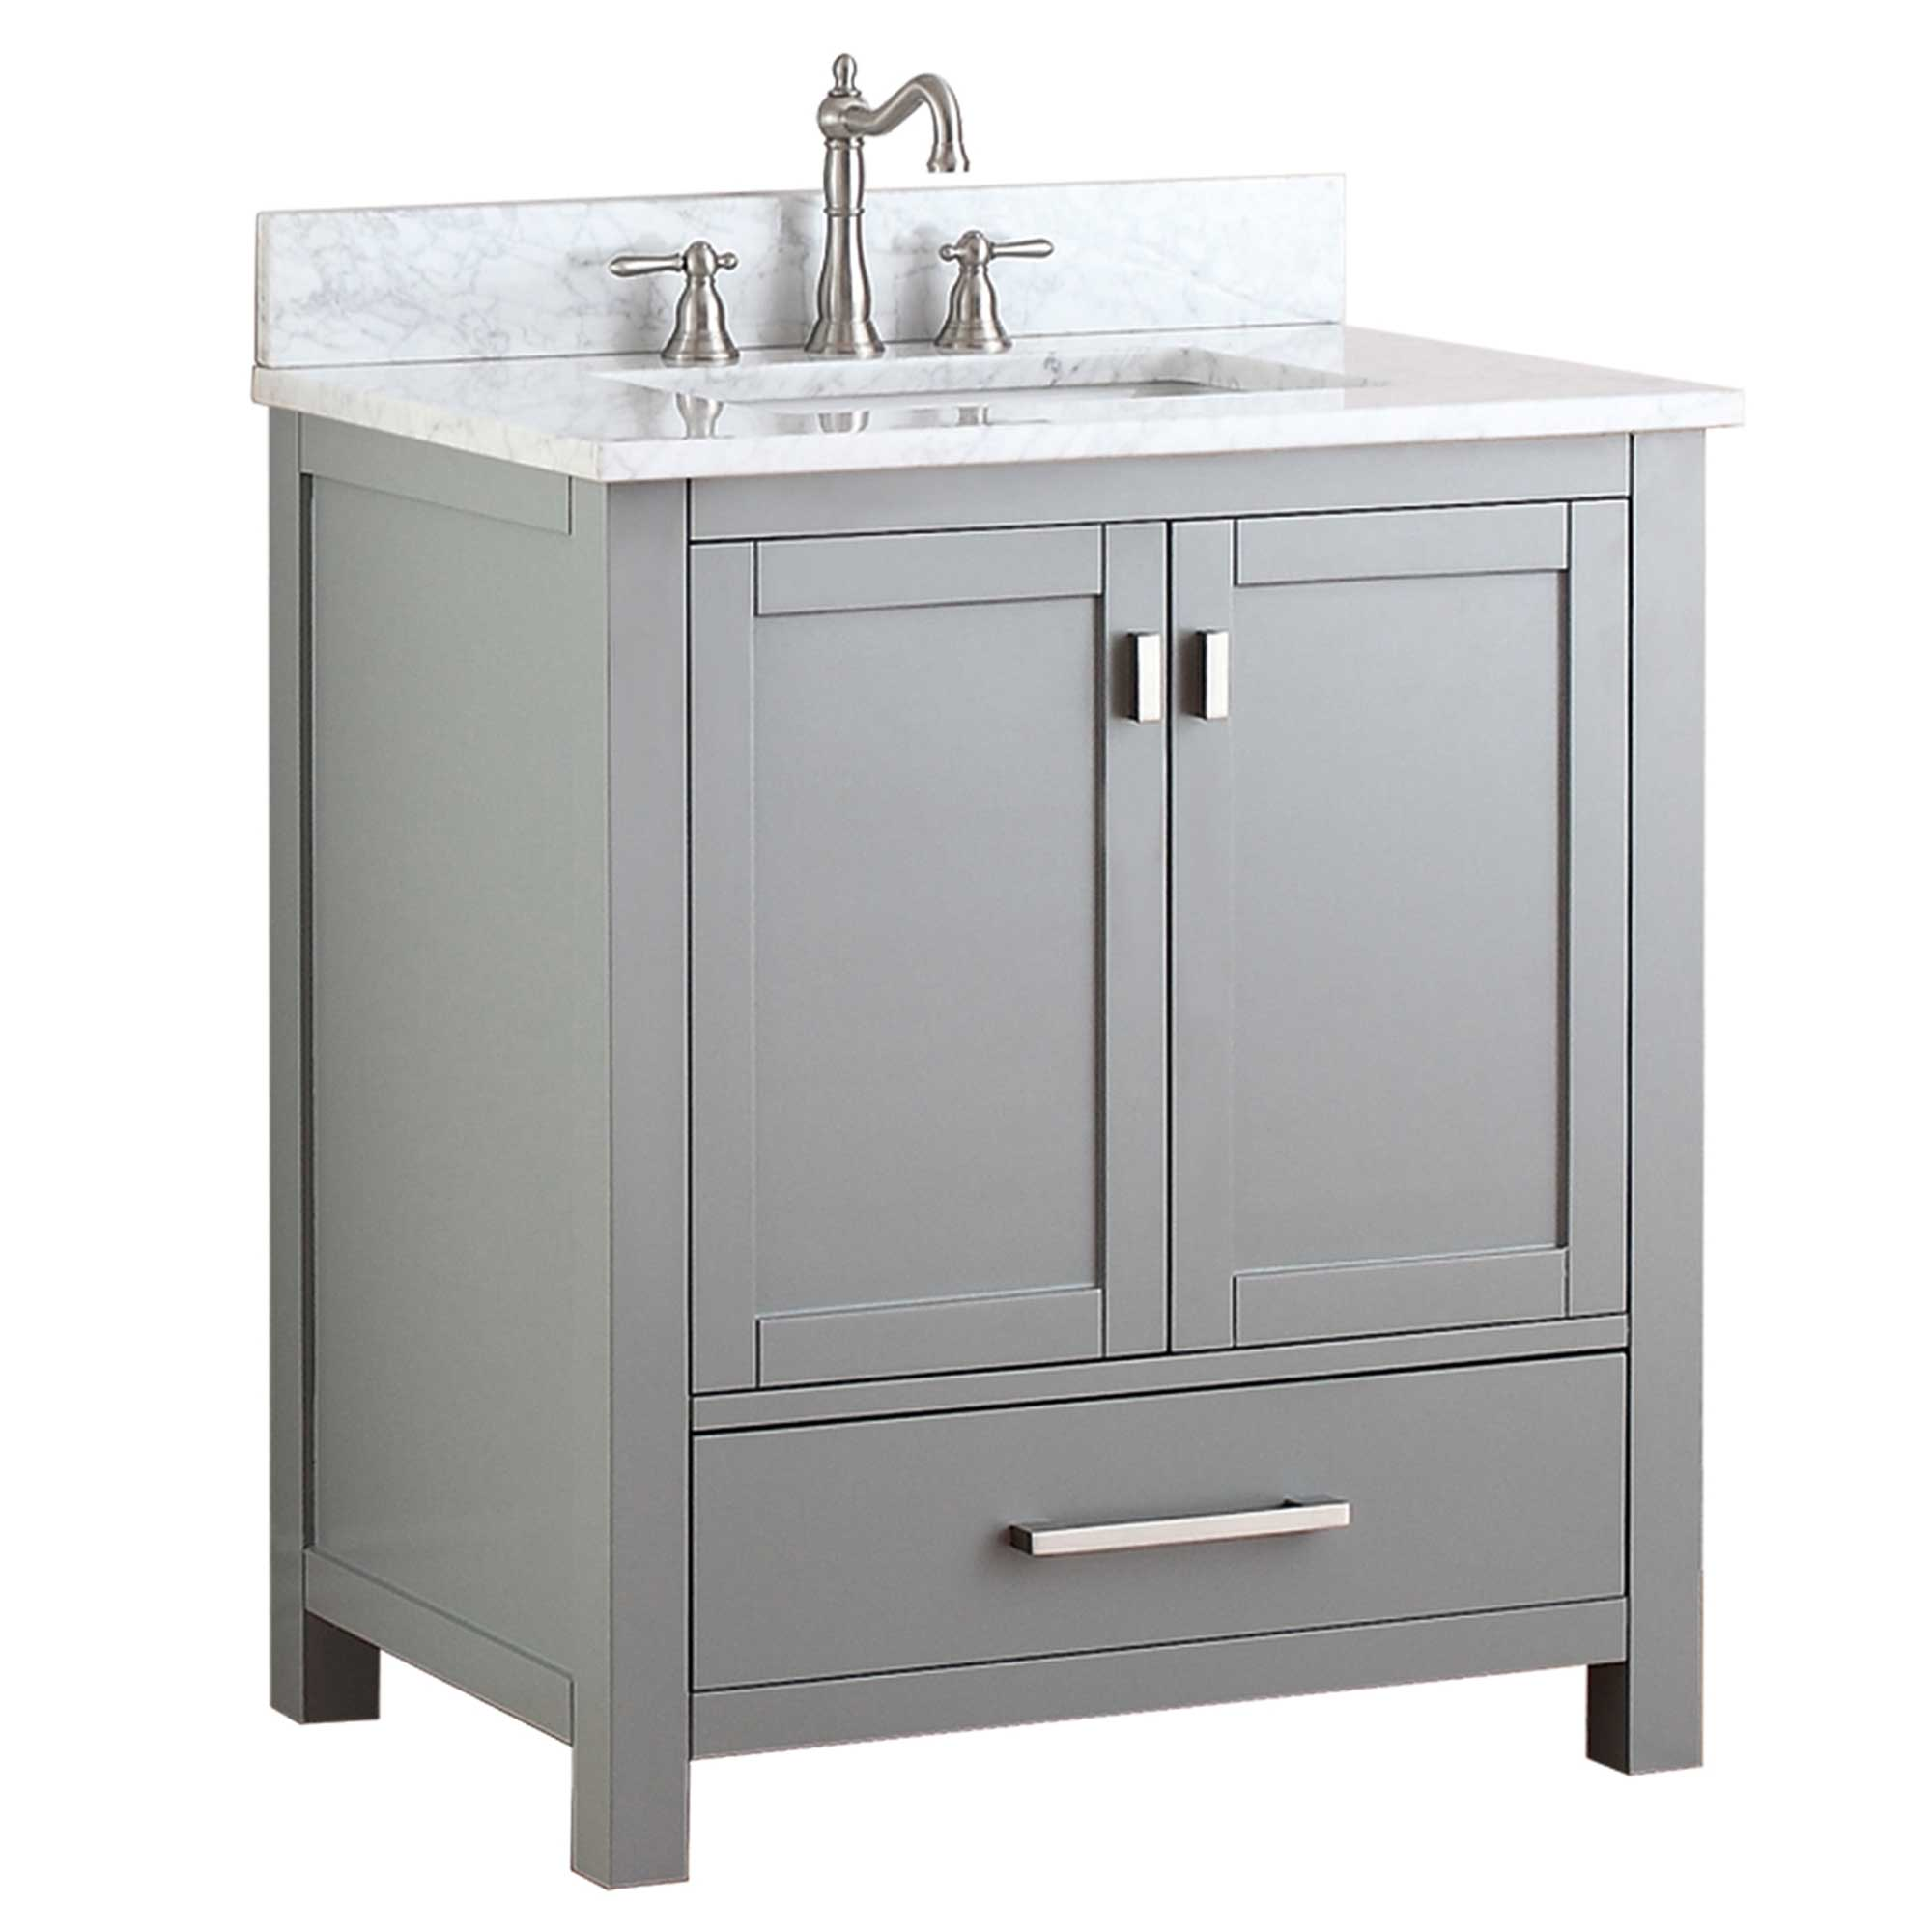 "31"" Toscana Single Bath Vanity - Chilled Gray with Carrera White Marble Top"